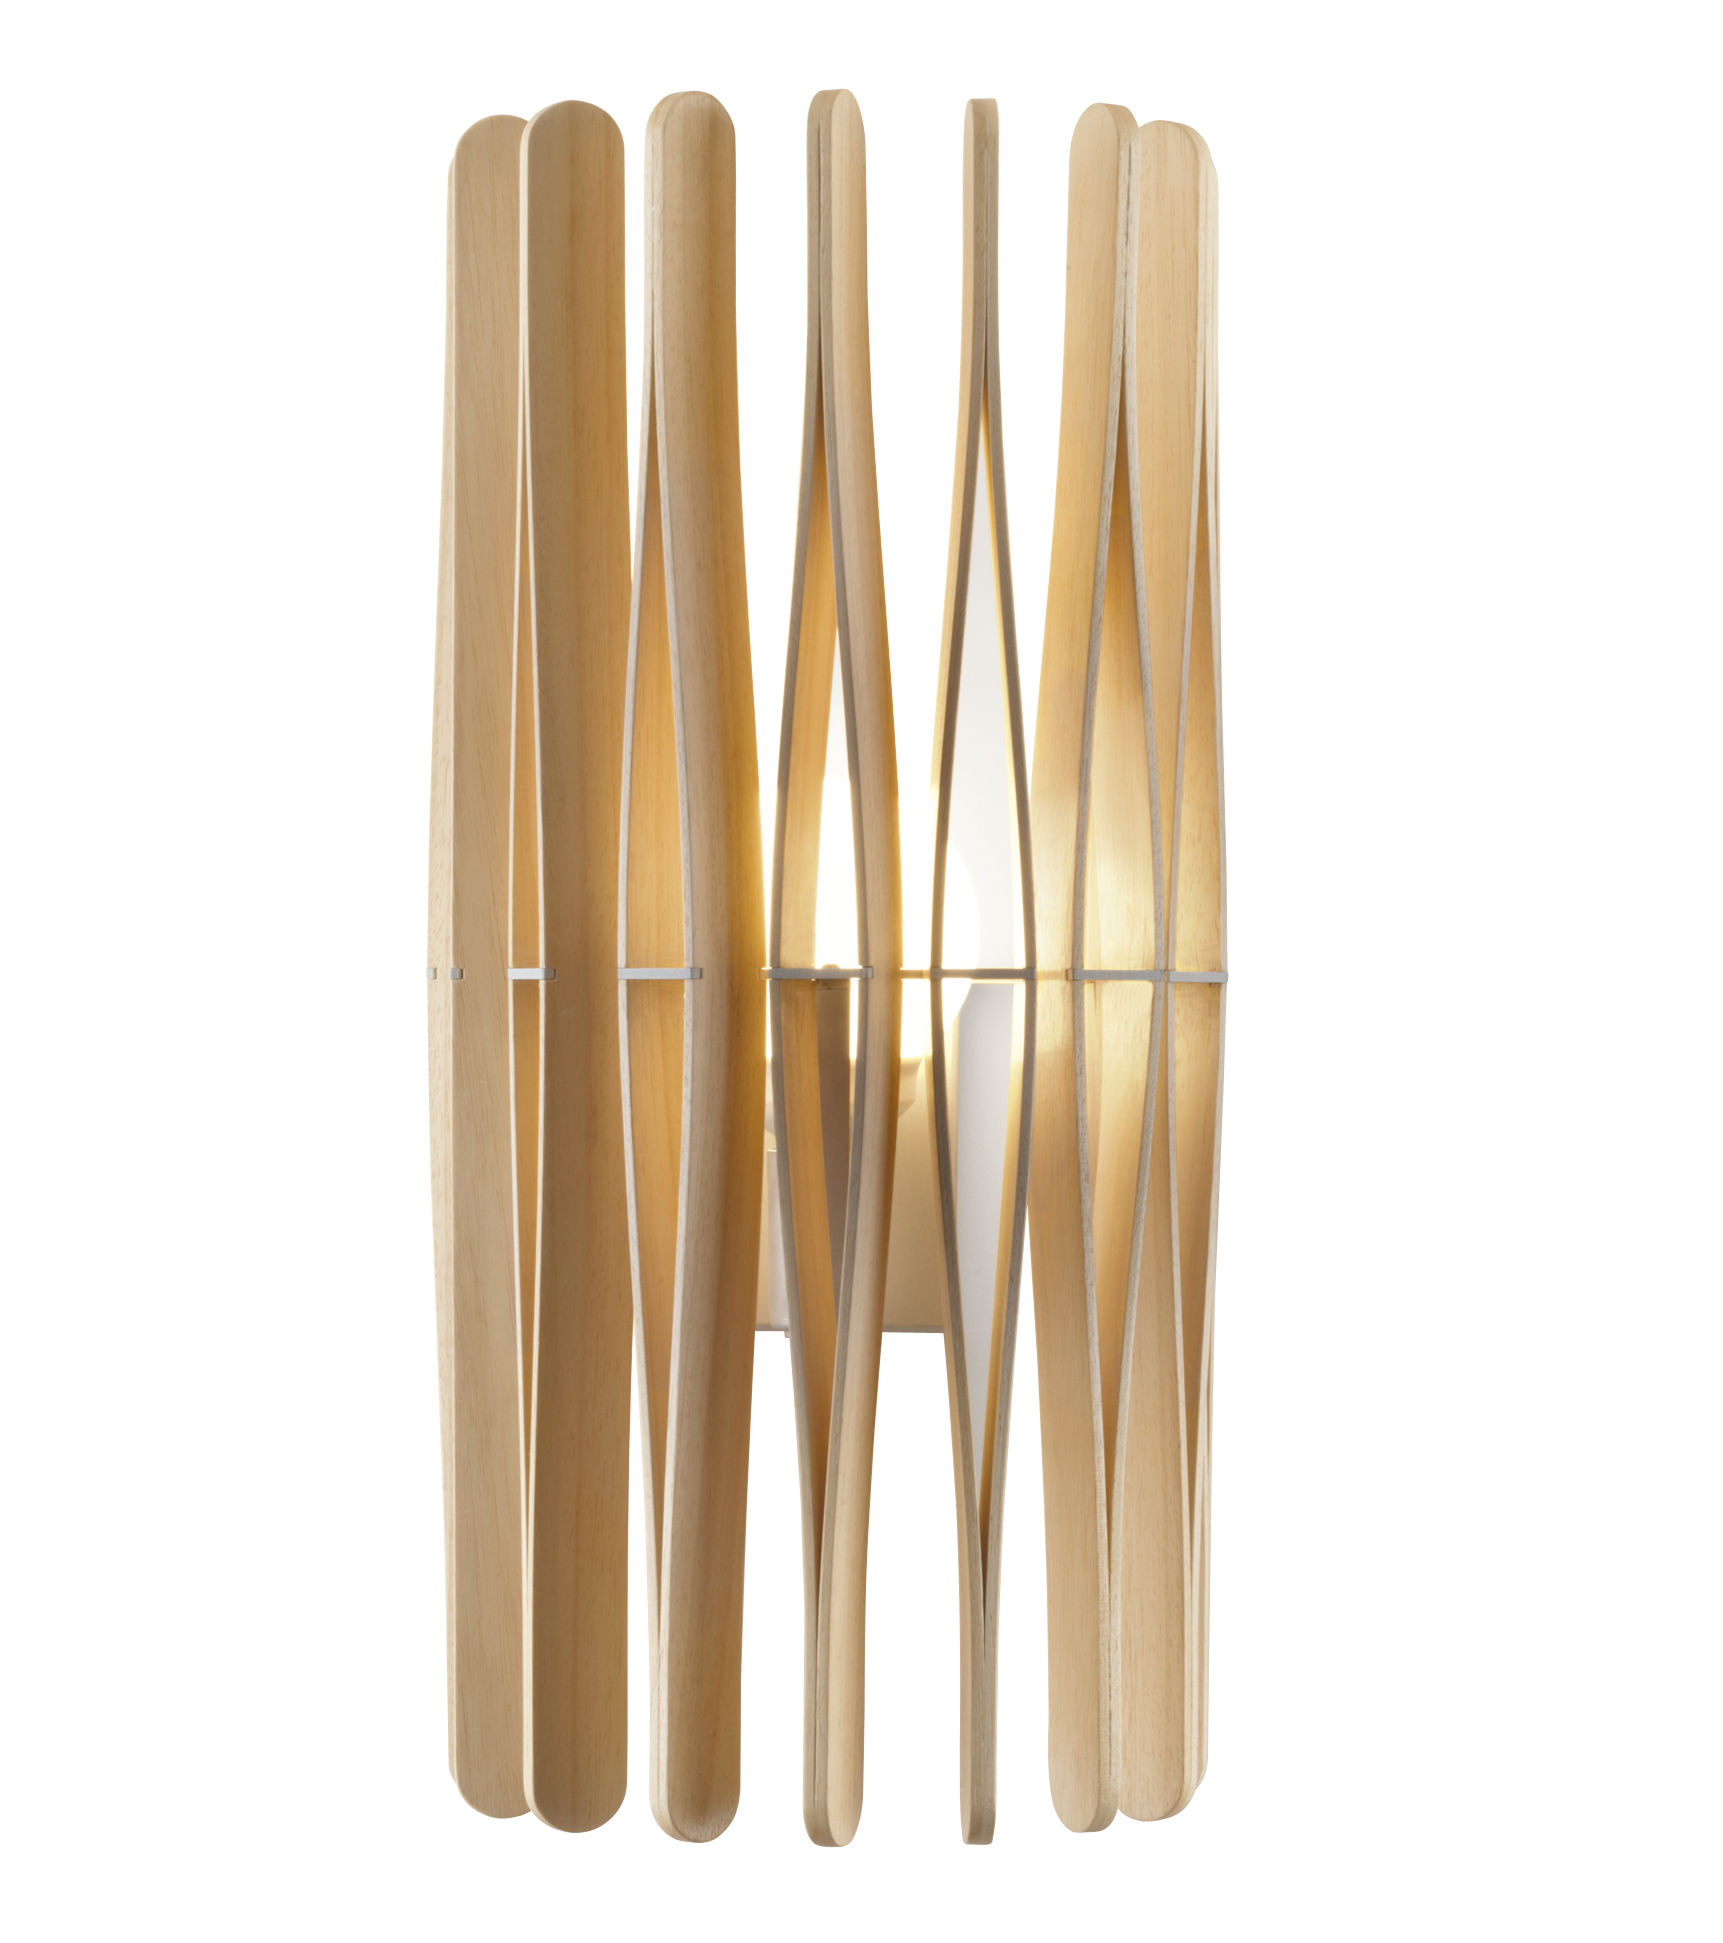 Lighting - Wall Lights - Stick Wall light by Fabbian - Natural wood - Ayous wood, Varnished metal